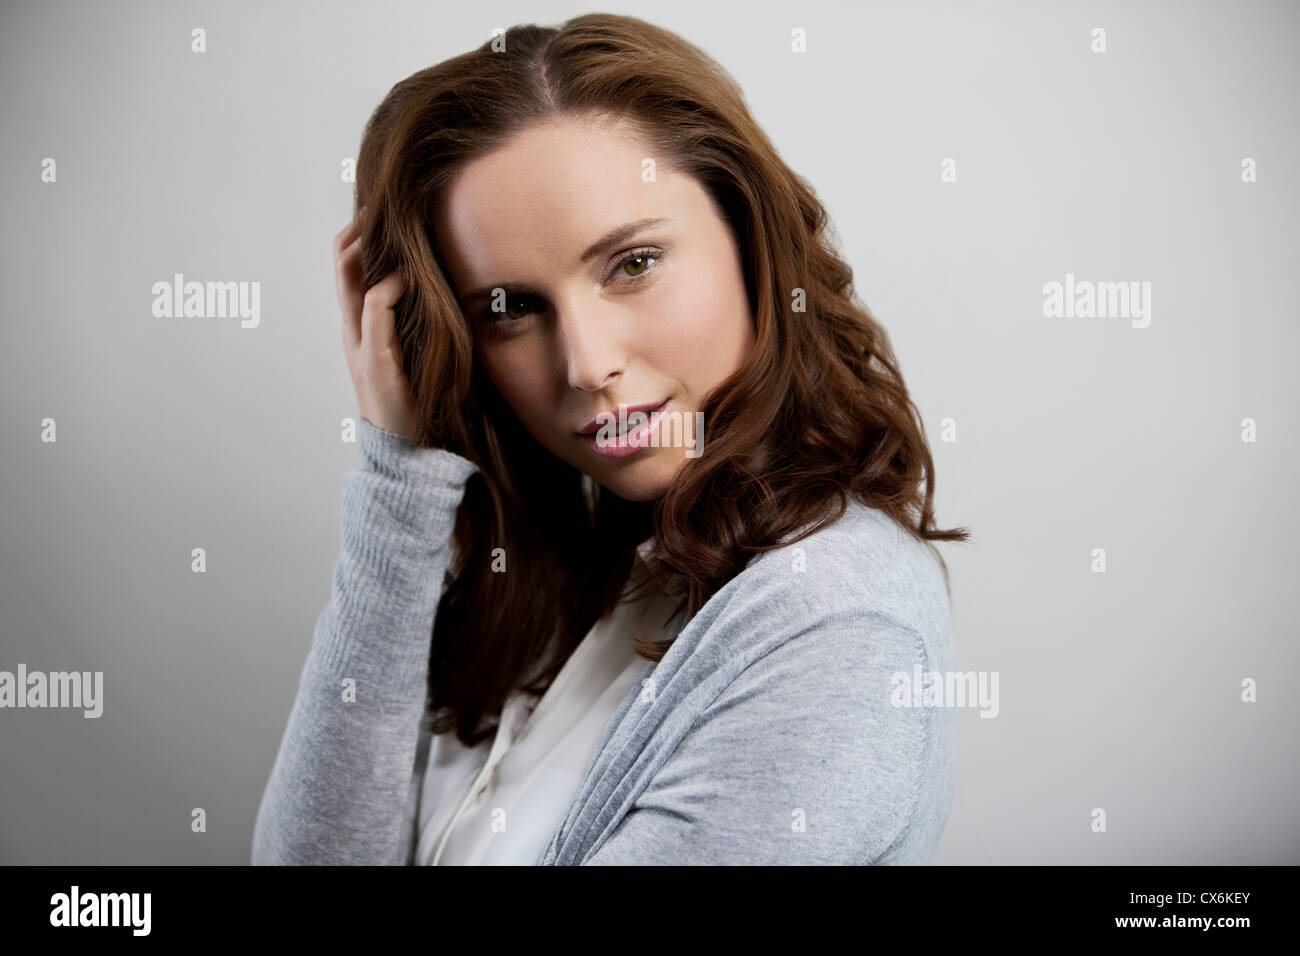 A young woman standing side on, looking to camera, hand to head - Stock Image